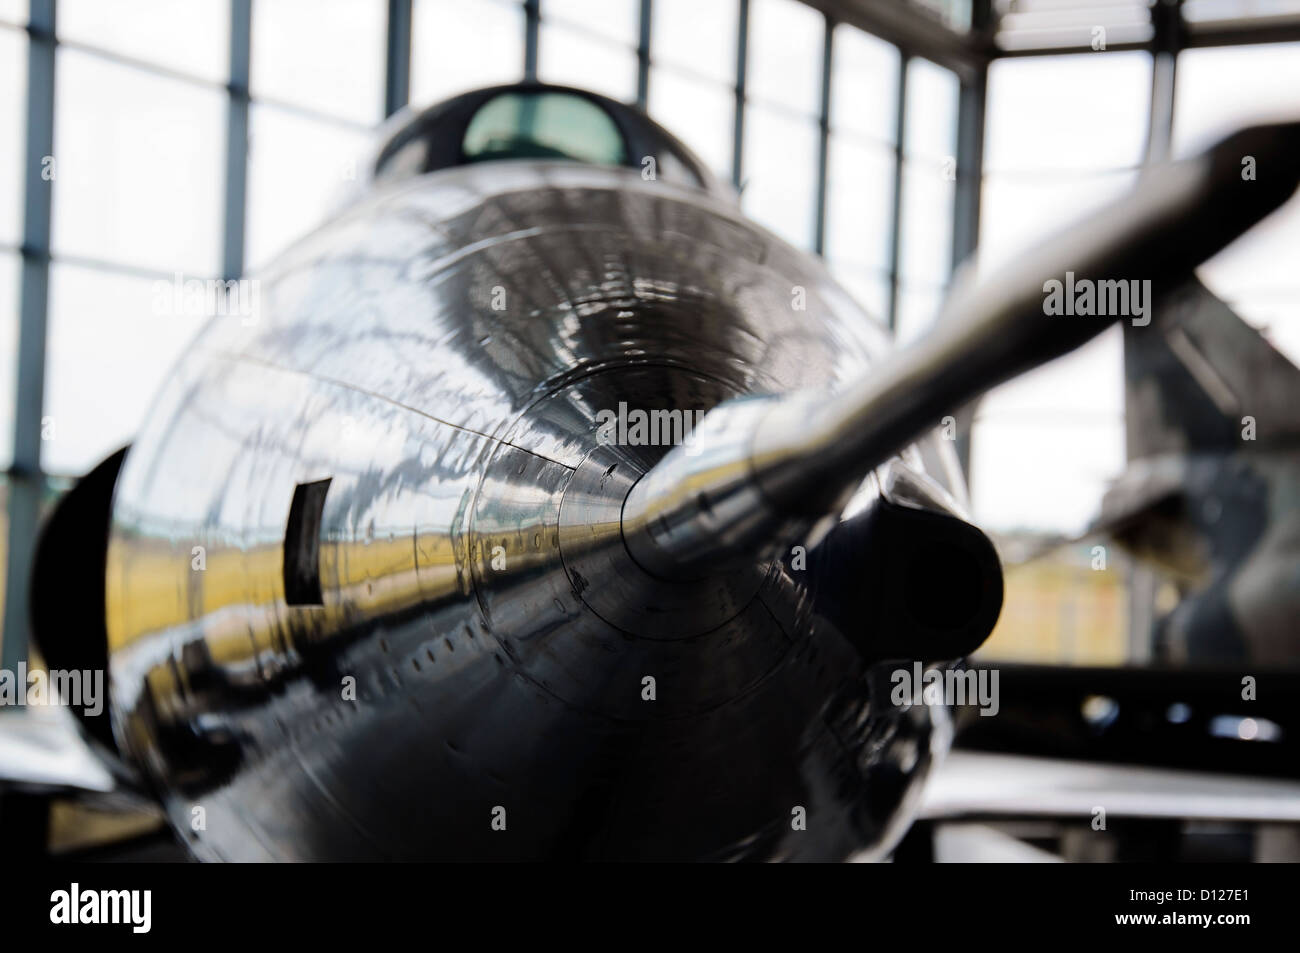 Front view of a modern fighter jet - Stock Image